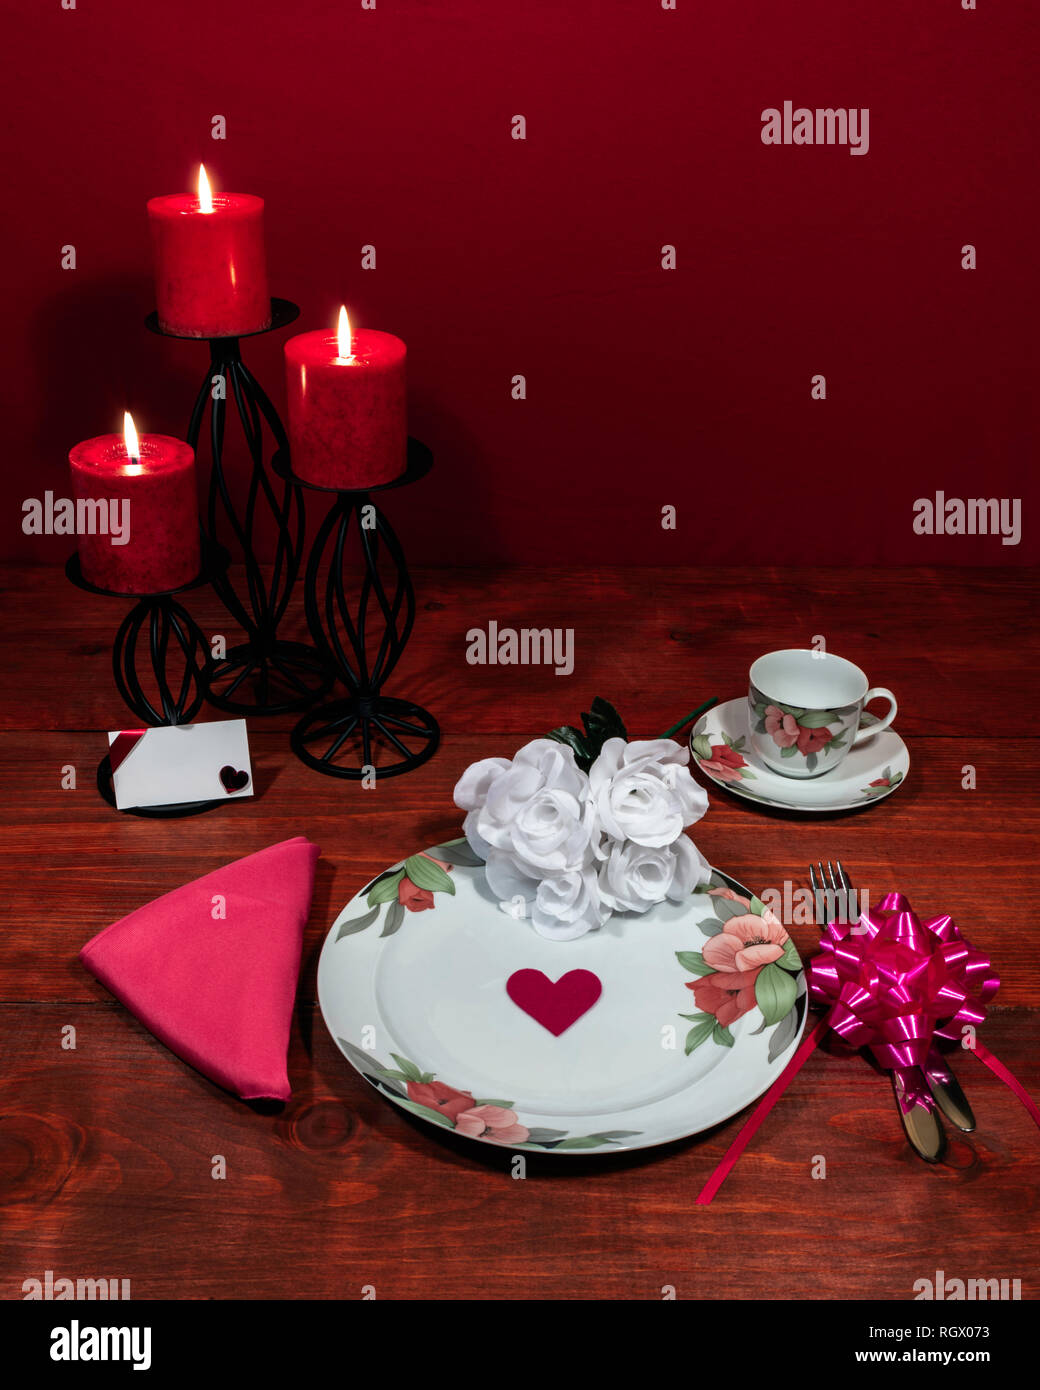 Floral pattern fine china dinnerware with matching plate, cup and saucer. bouquet of white roses, pink napkin, silverware, red candles and card Stock Photo